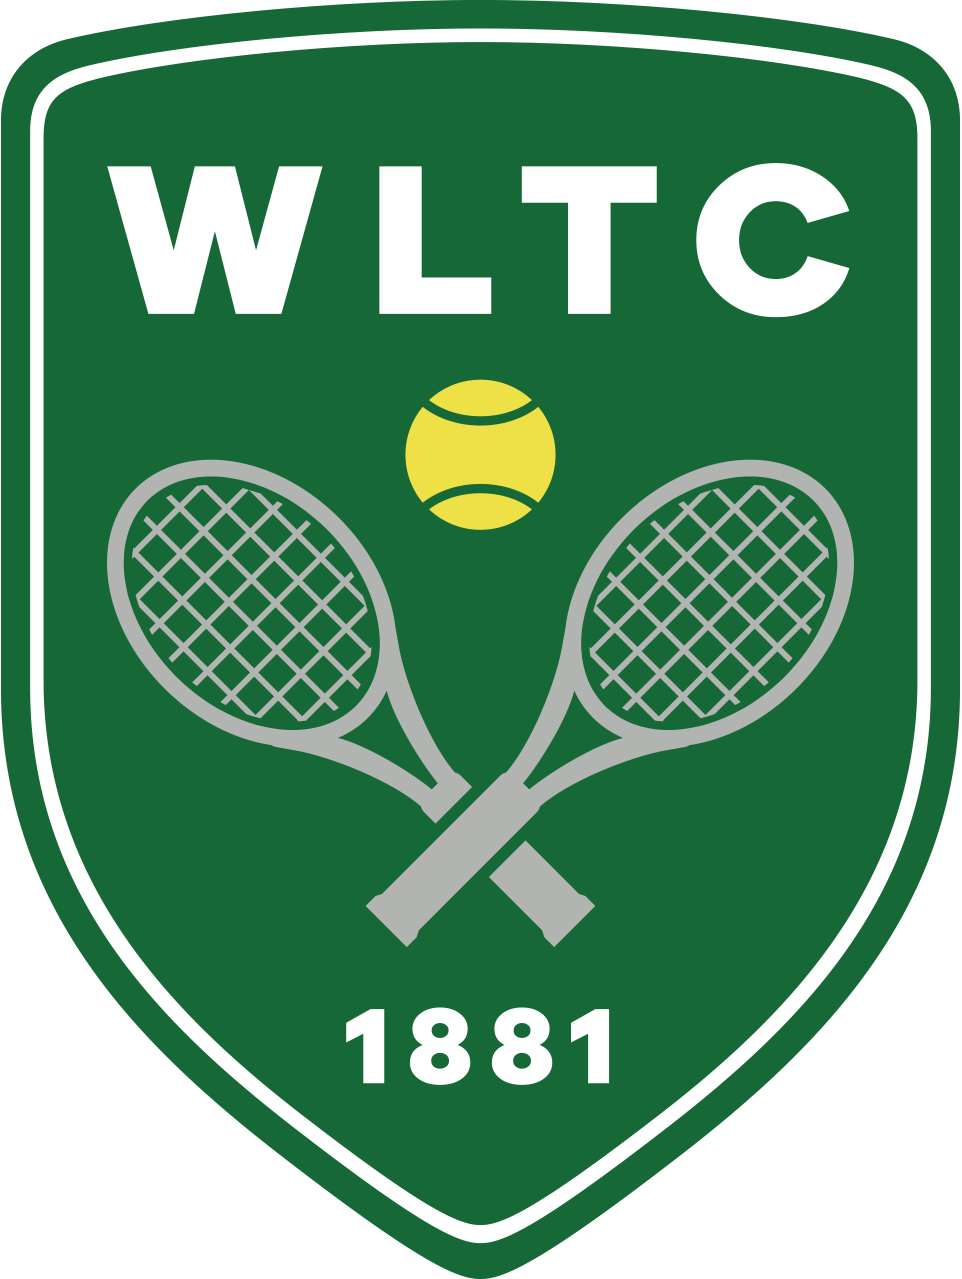 Winnipeg Lawn Tennis Club